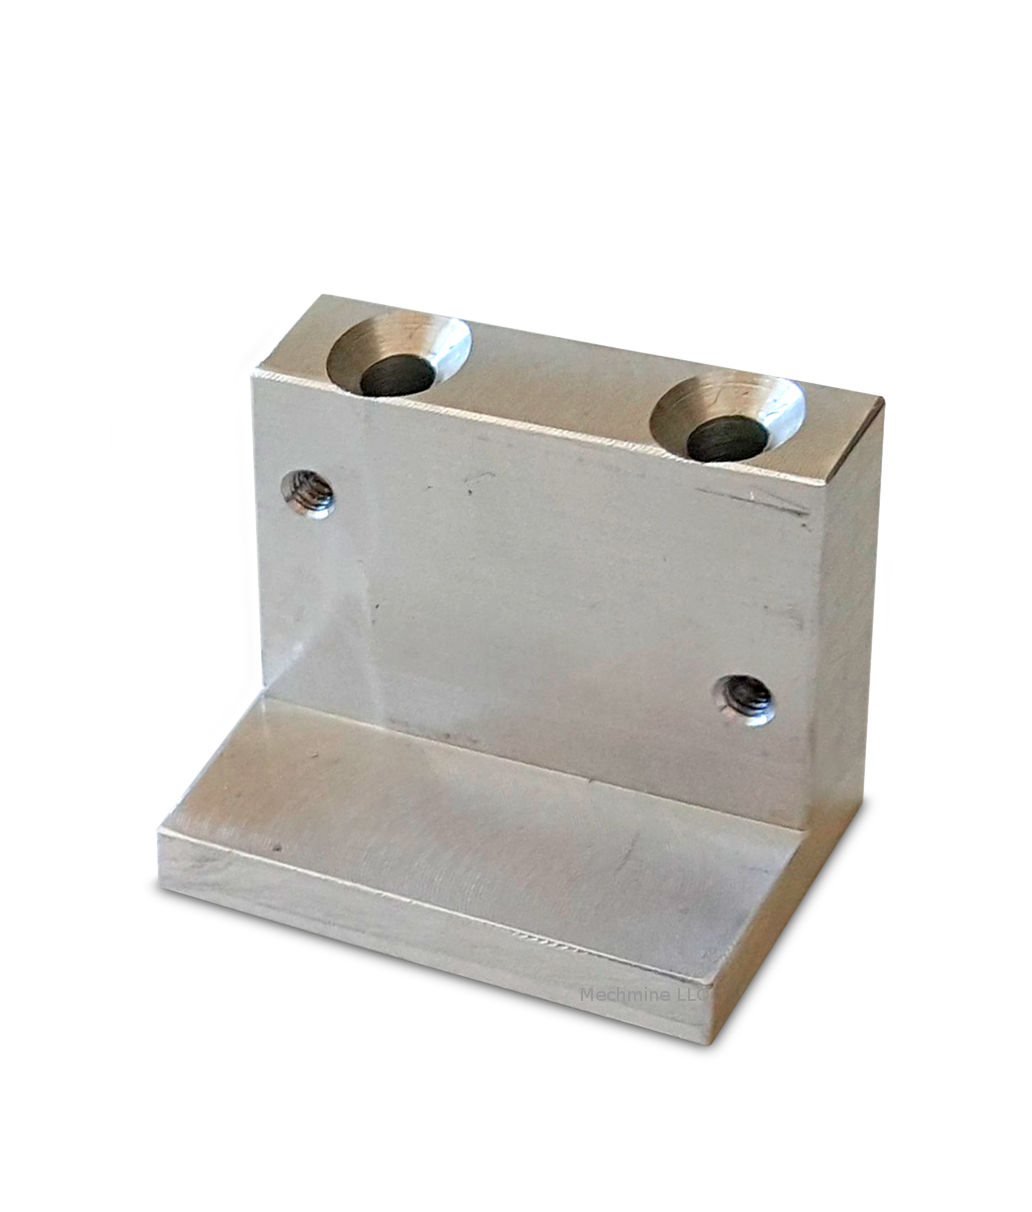 mechmine llc predictive maintenance sensor mount front